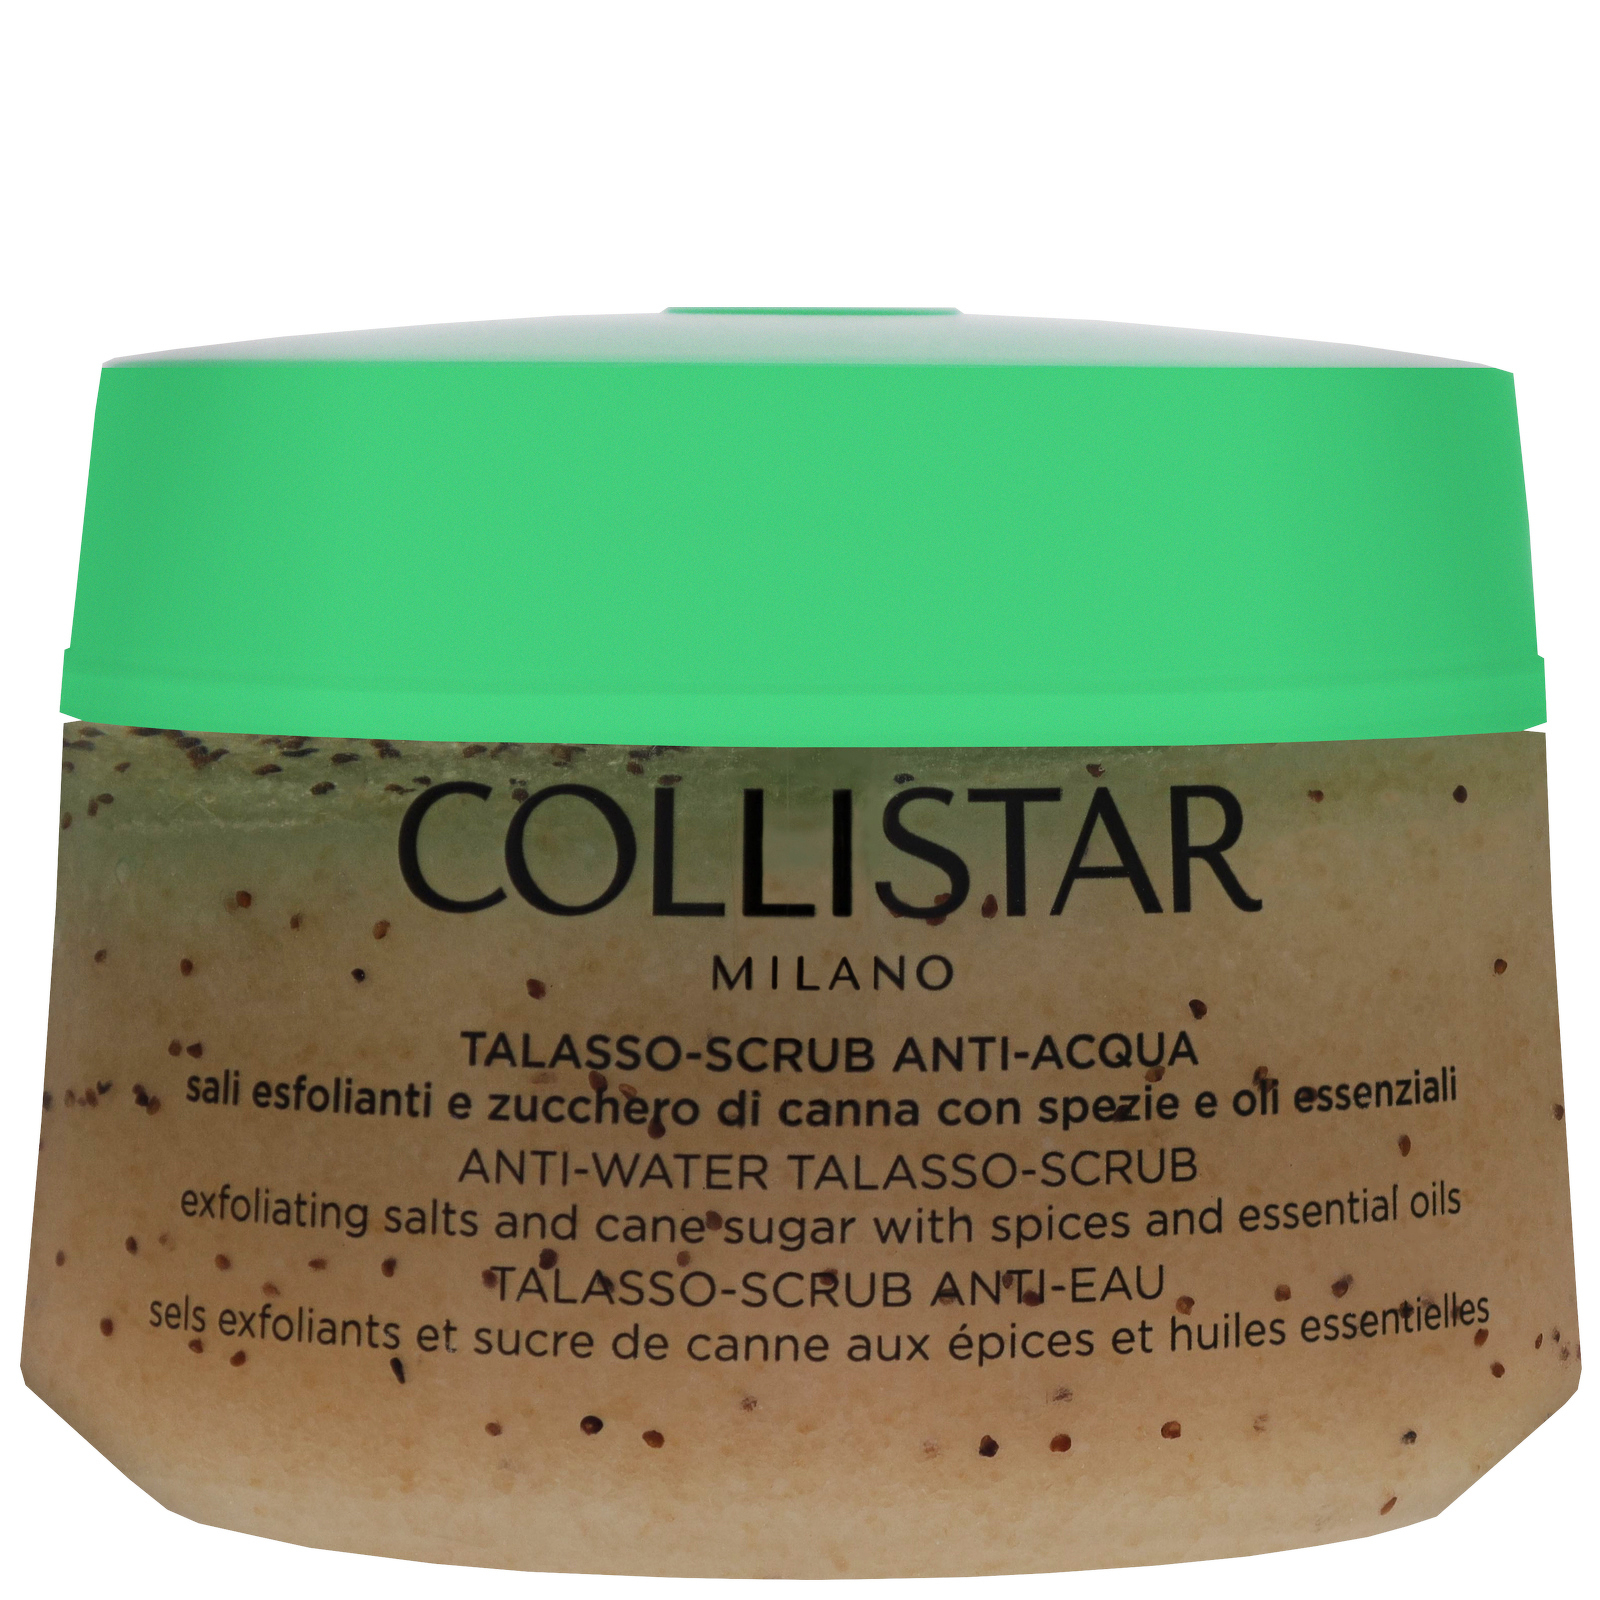 Collistar Exfoliators & Masks Anti-Water Talasso-Scrub 700g